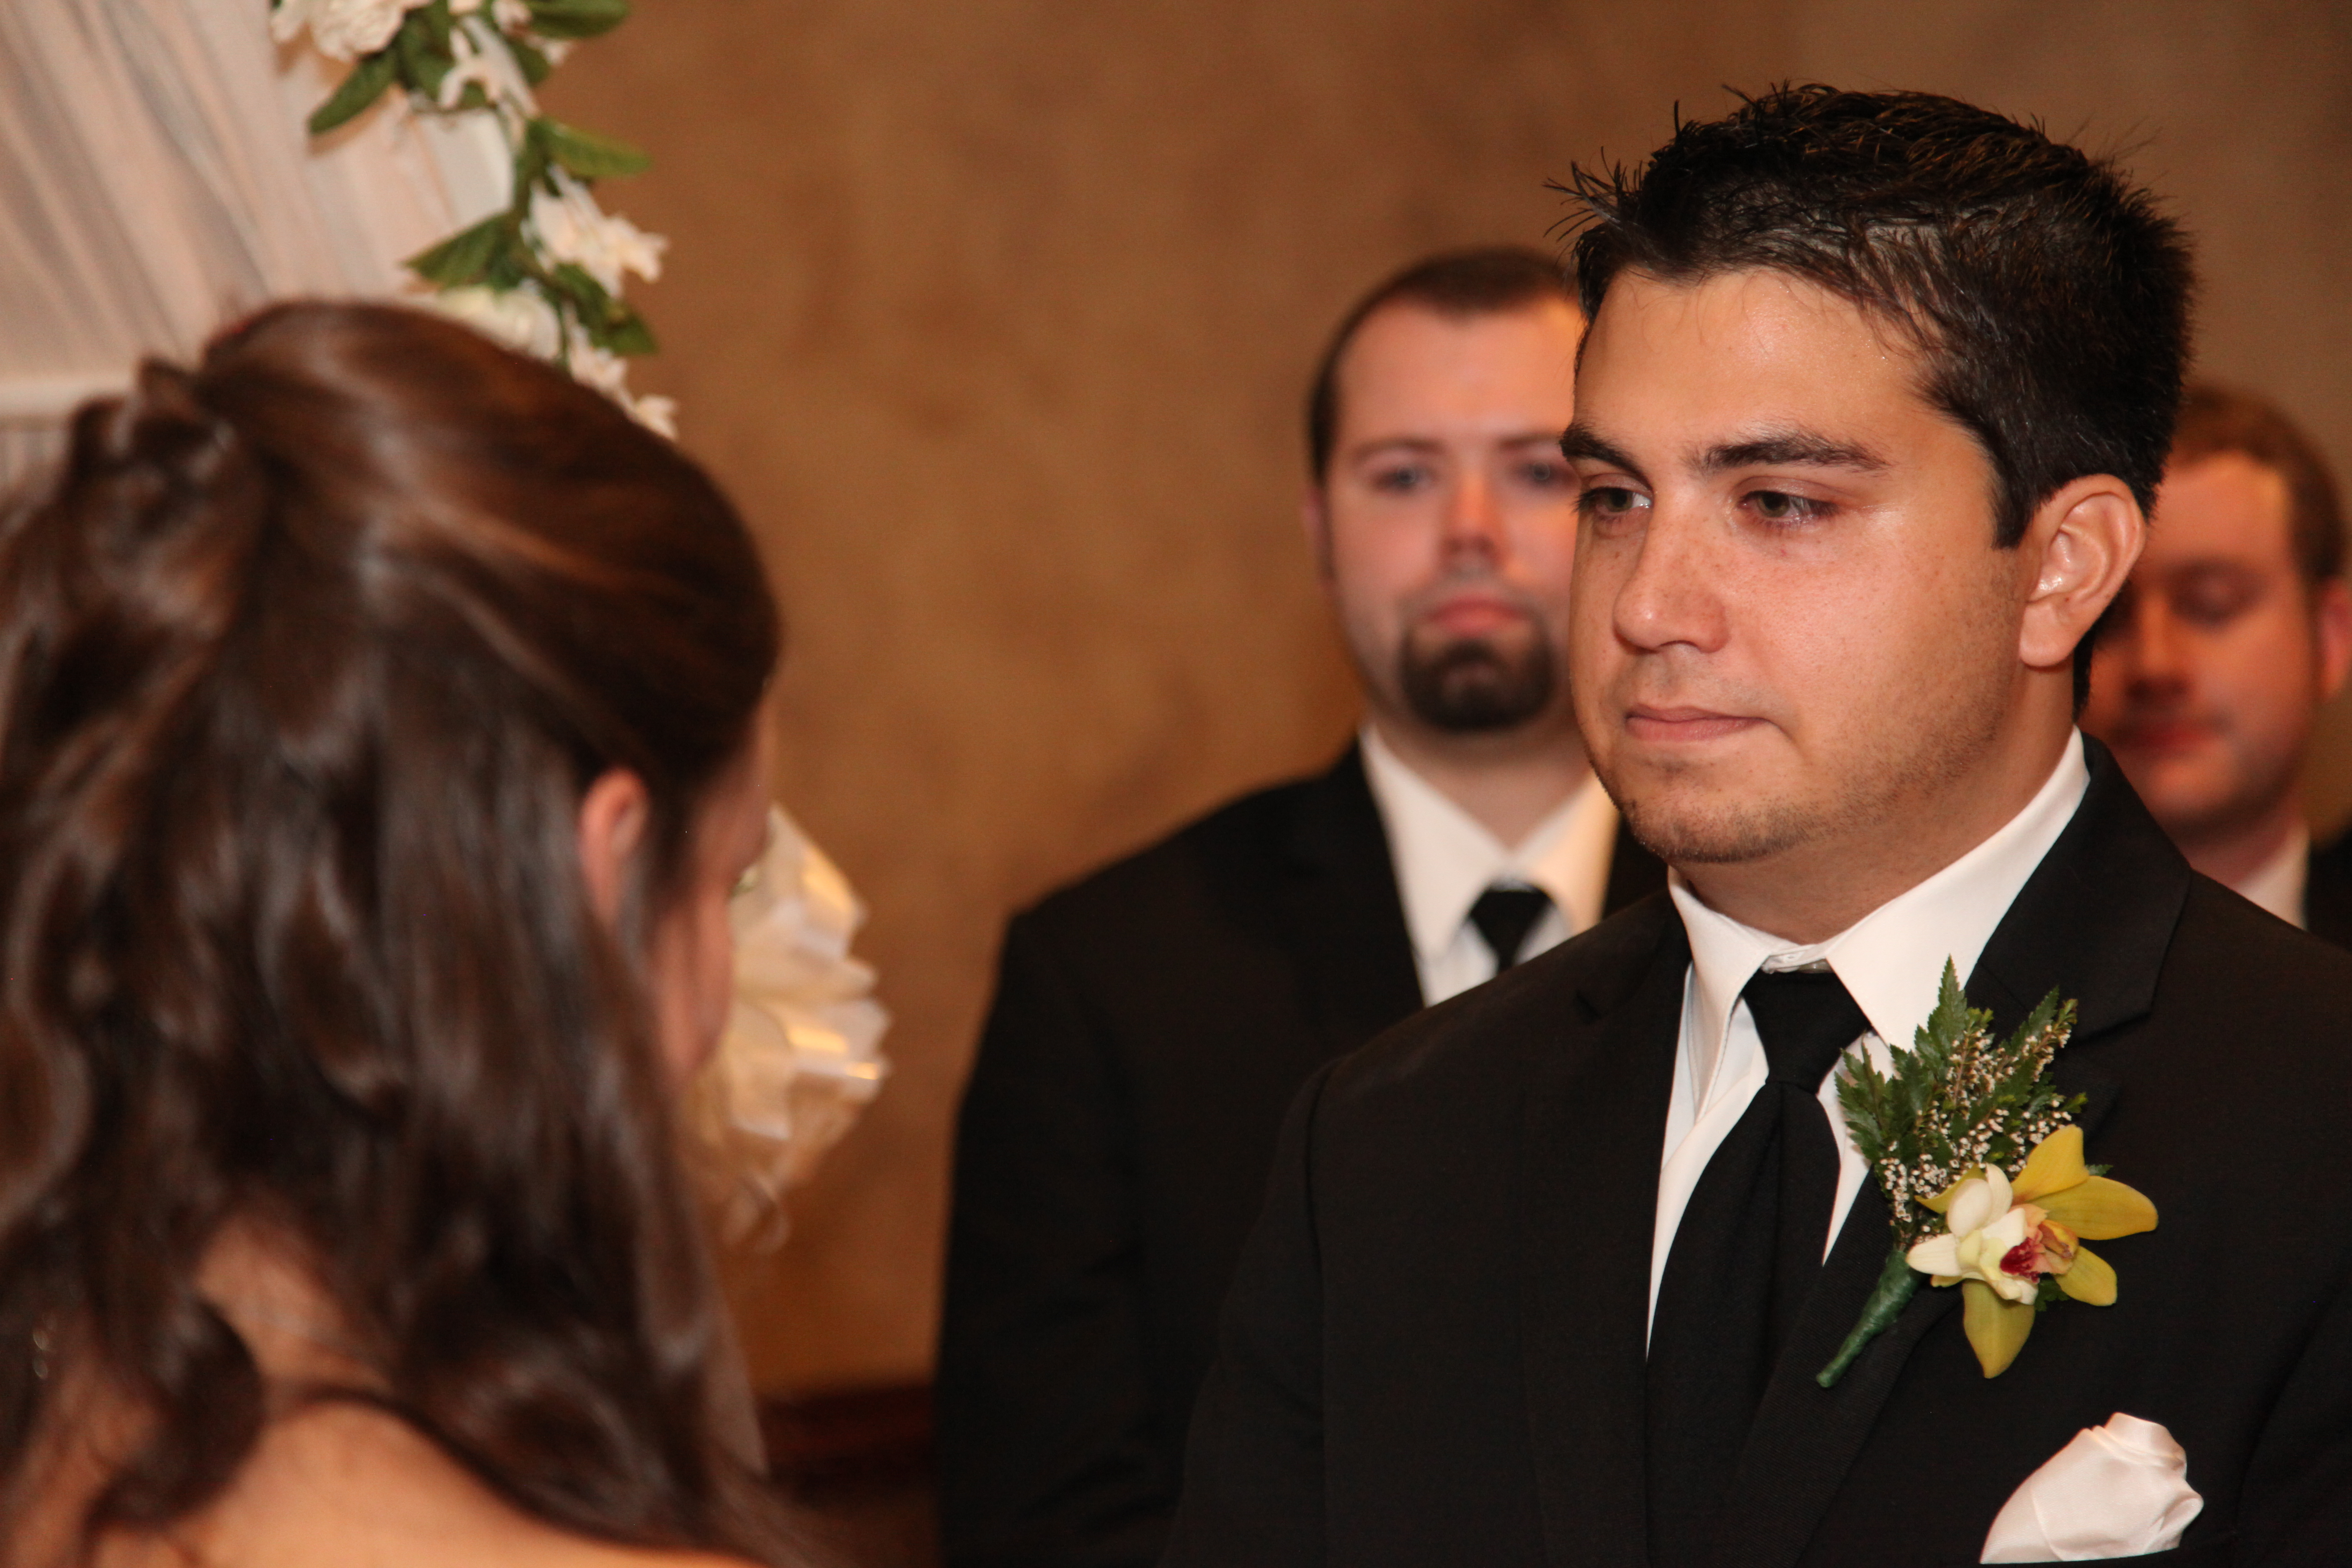 The Groom Crying